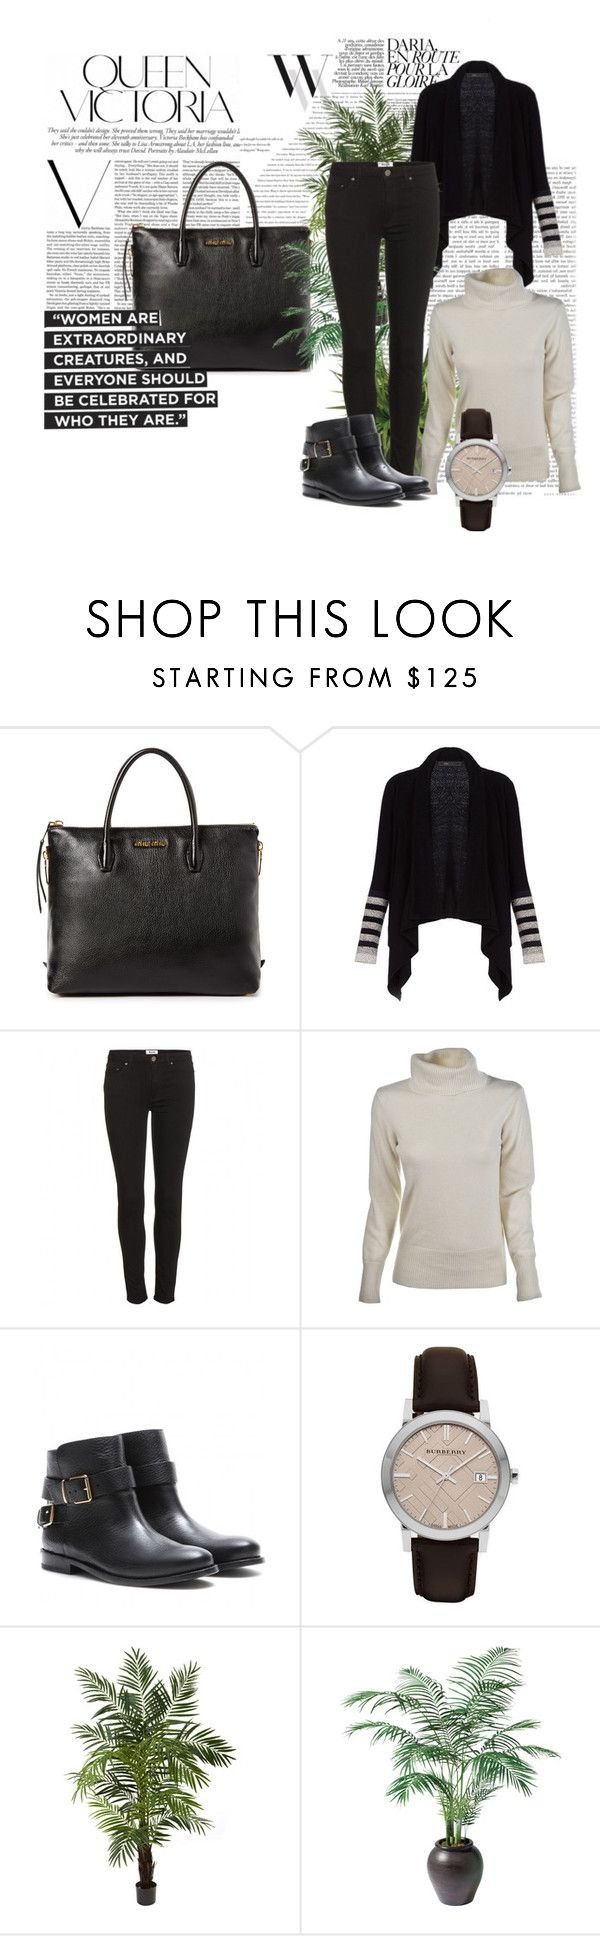 """Nicole - Dinner with Ryan and family"" by miriam83 ❤ liked on Polyvore featuring Balenciaga, Miu Miu, BCBGMAXAZRIA, Acne Studios, Burberry, Victoria Beckham, Nearly Natural and Ethan Allen"